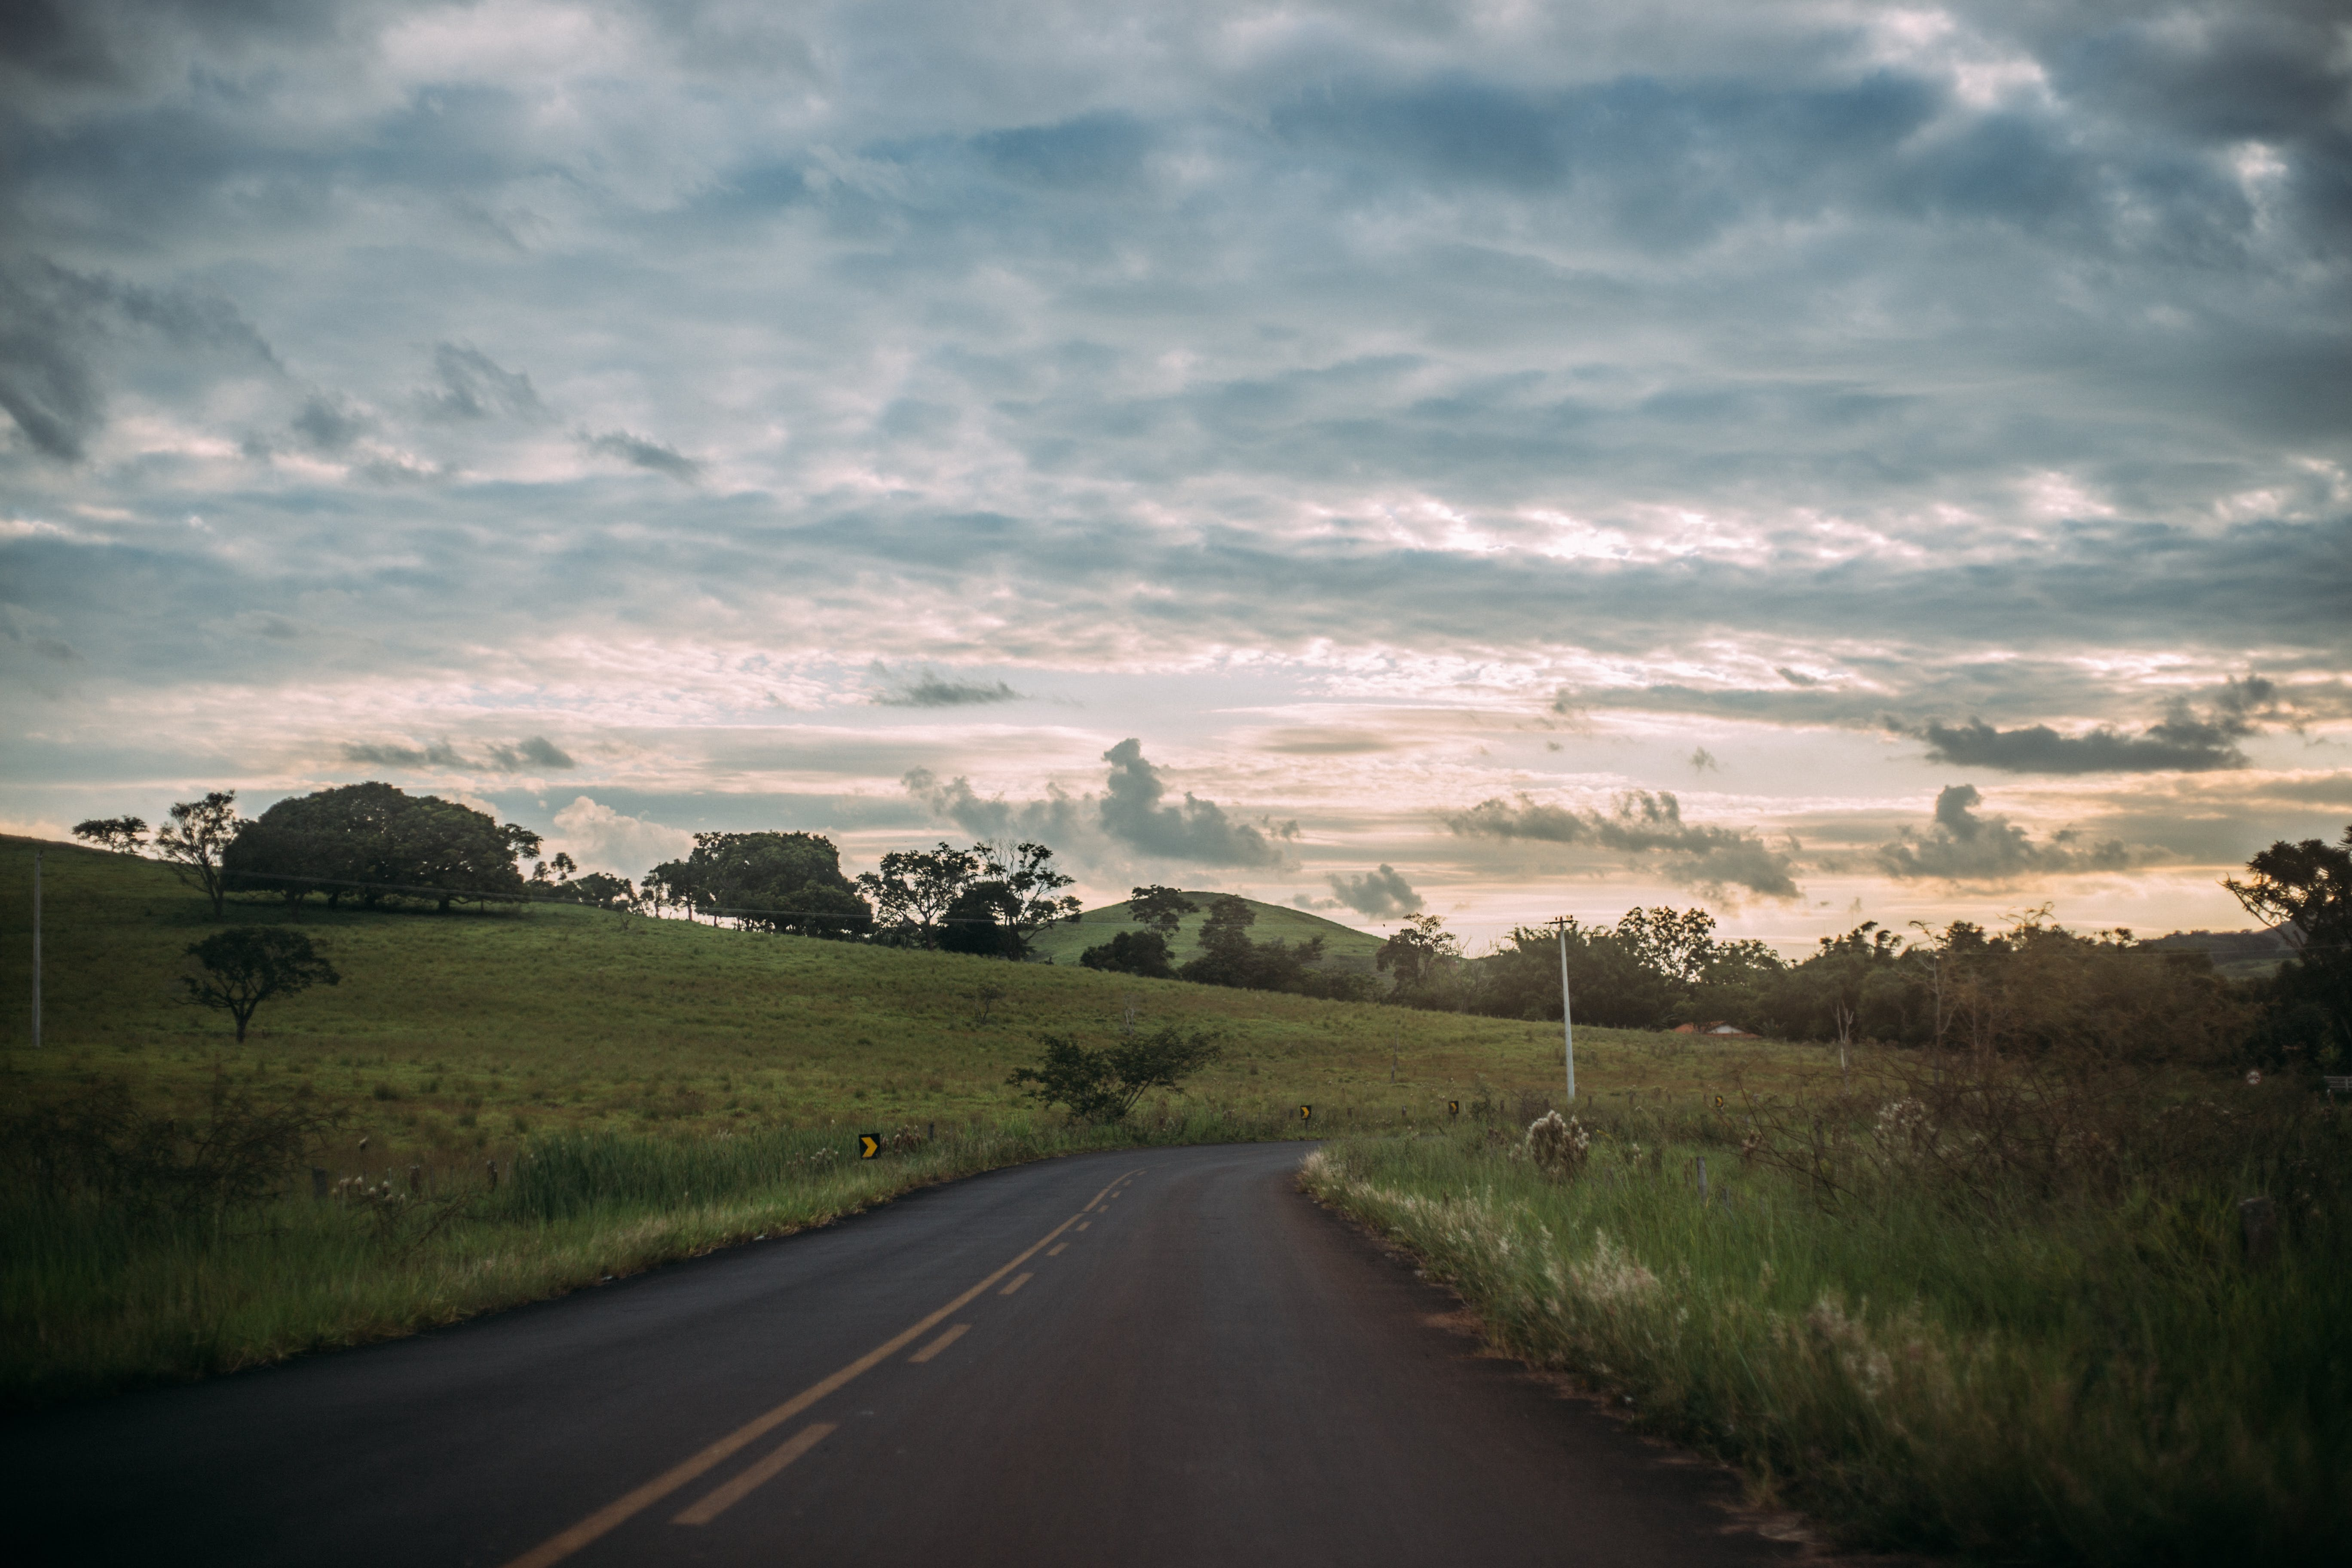 clouds, countryside, daylight